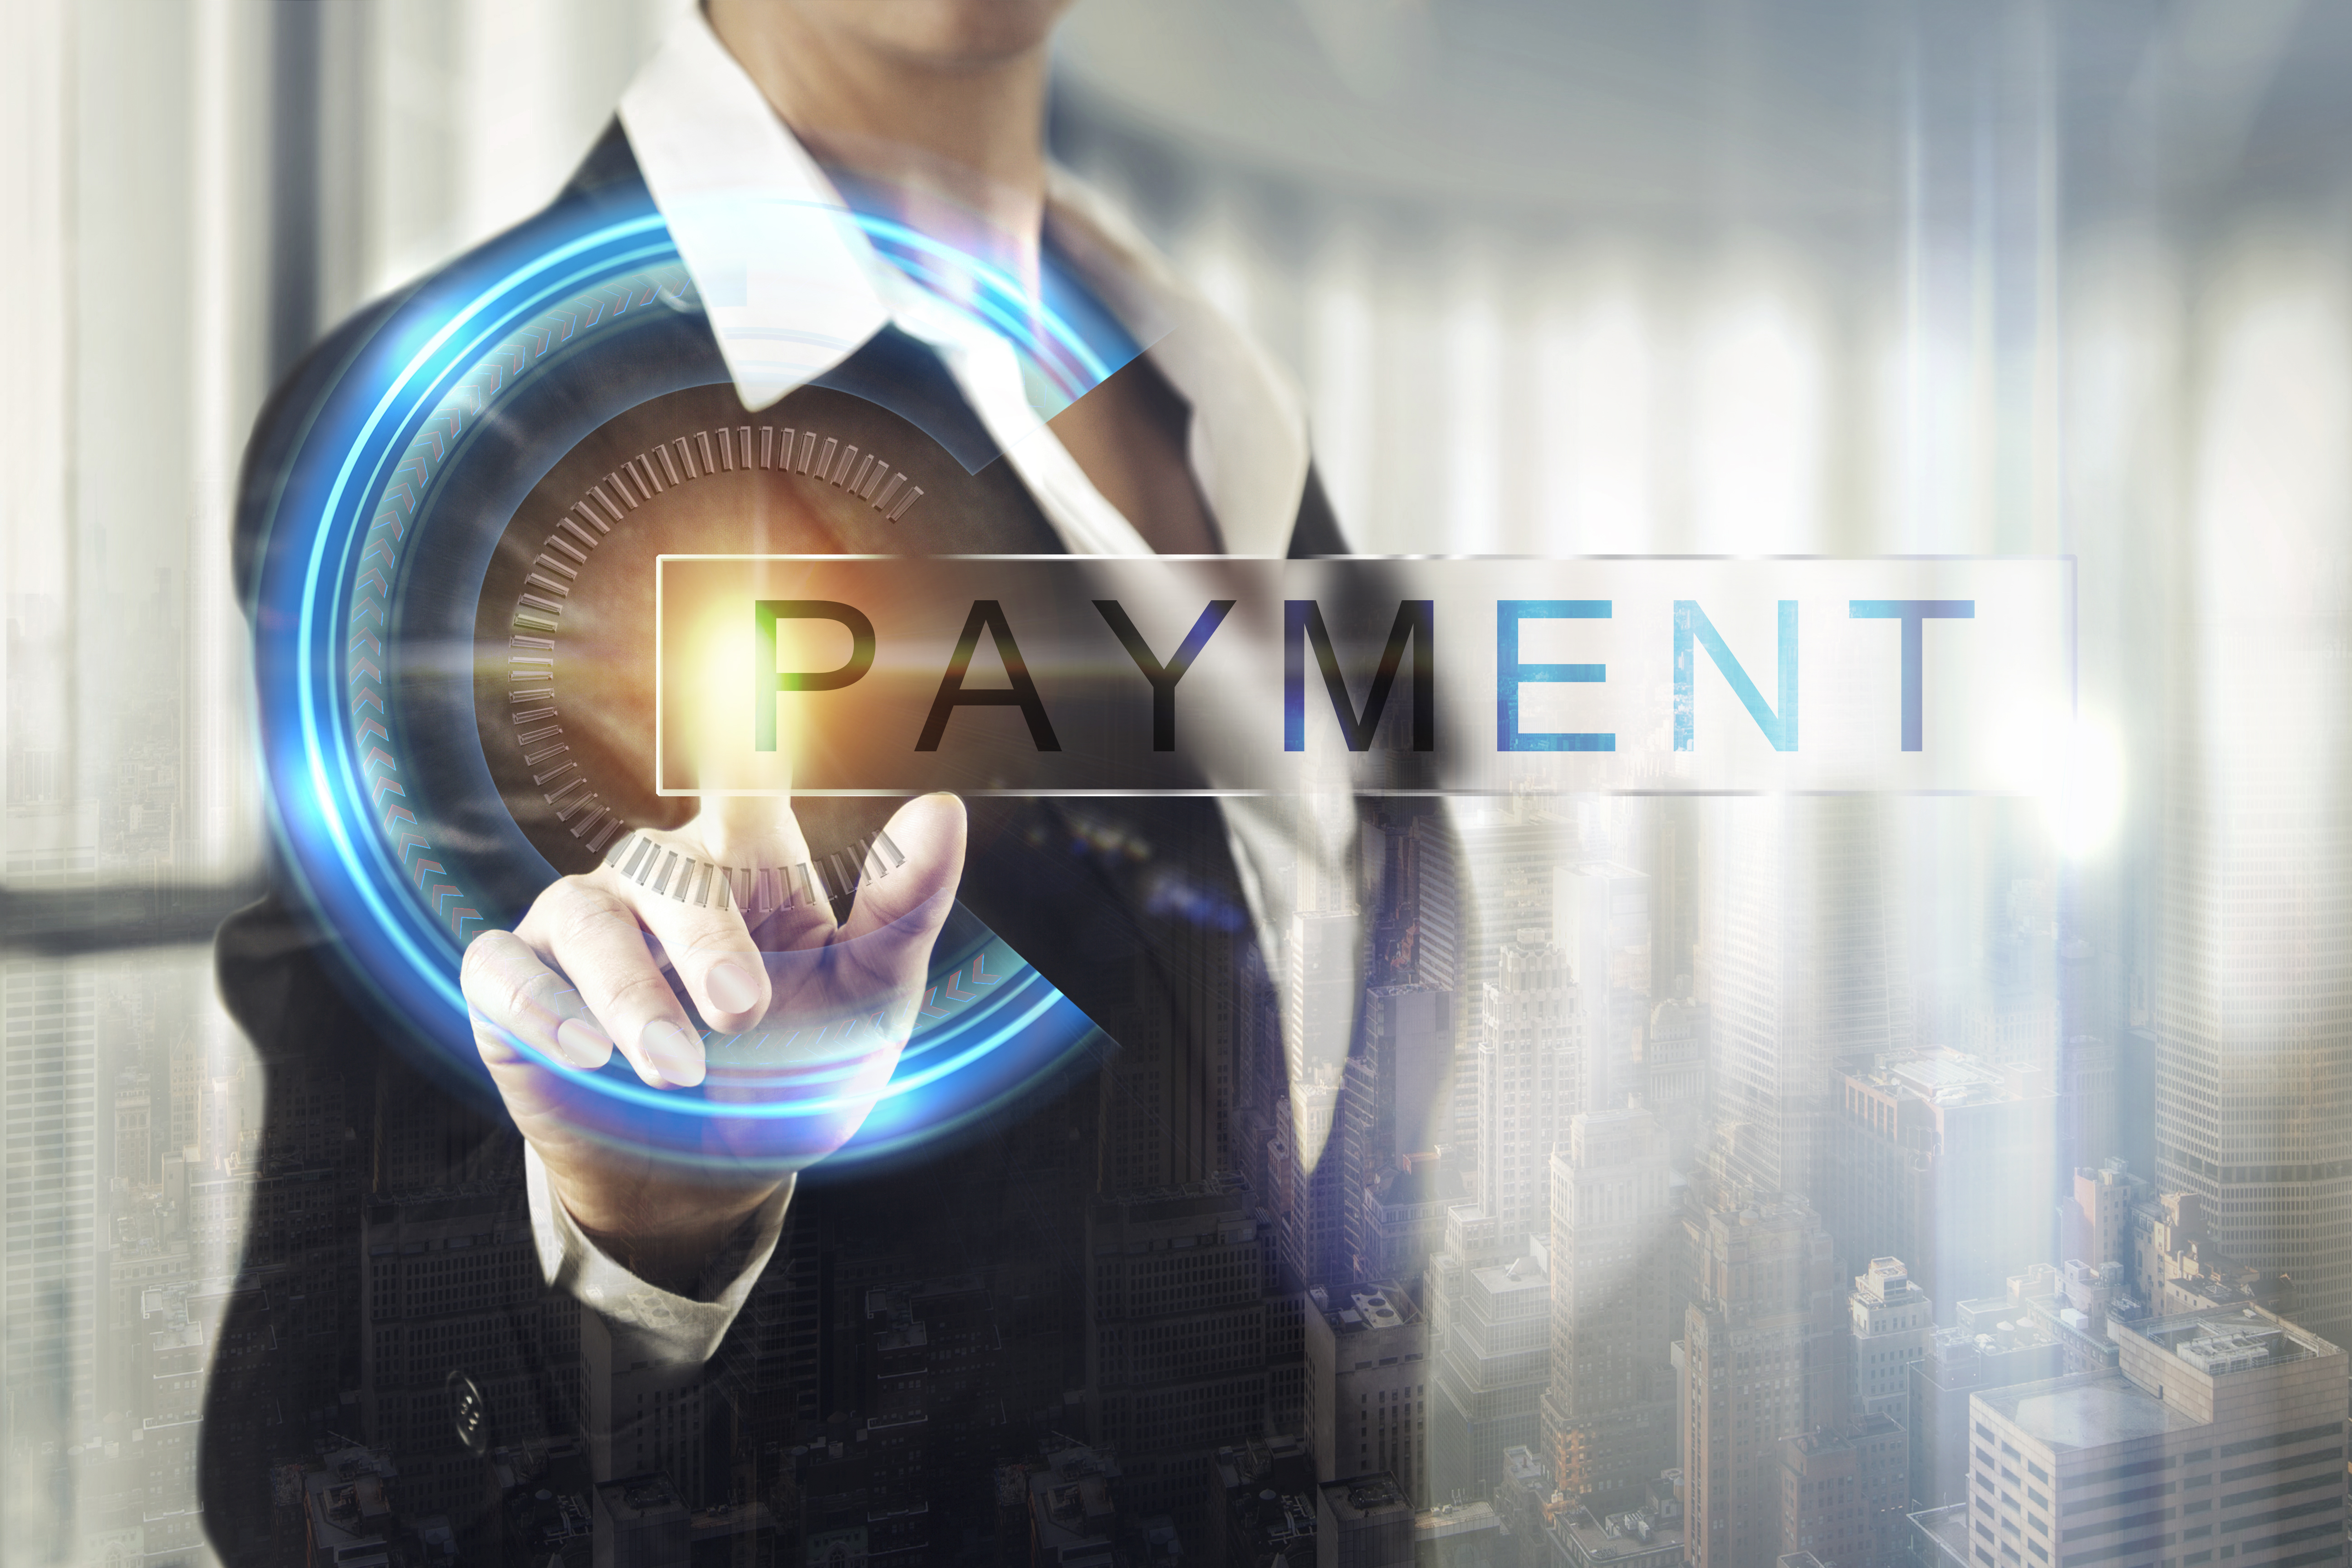 woman in suit presses finger to neon blue button that reads Payment in foreground